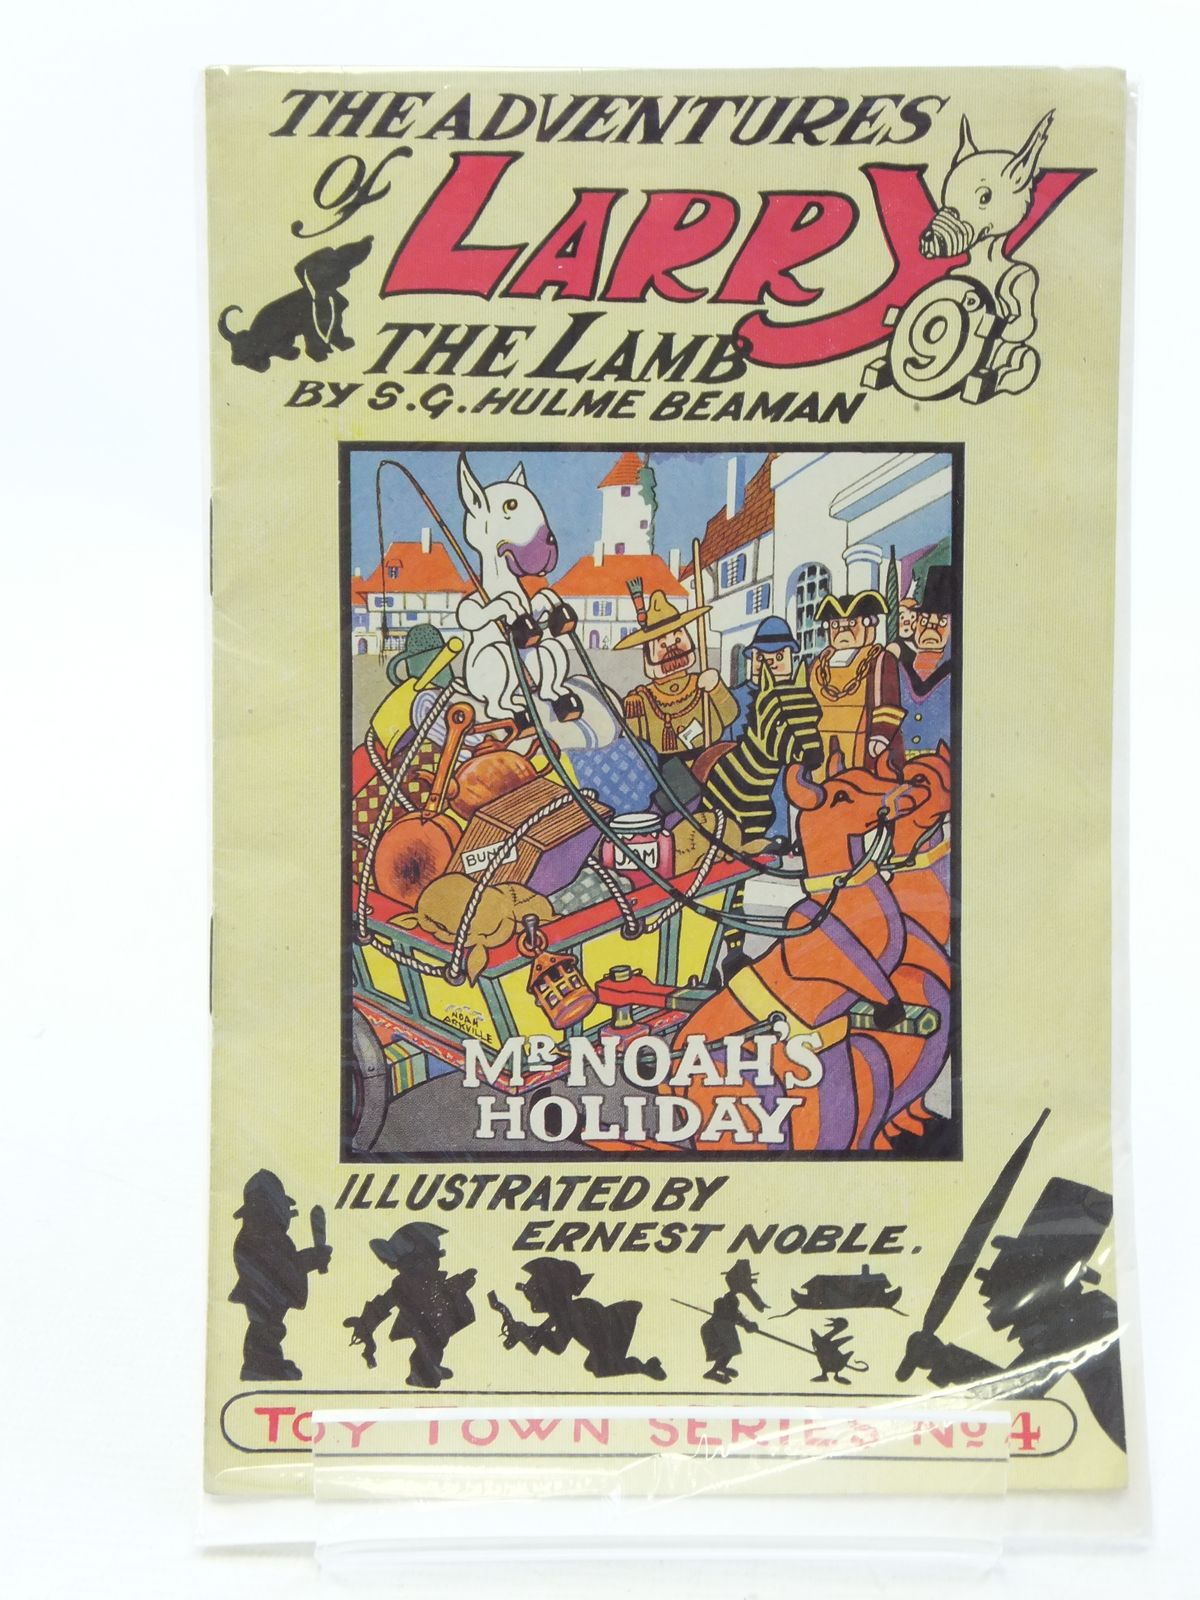 Photo of THE ADVENTURES OF LARRY THE LAMB - MR. NOAH'S HOLIDAY written by Beaman, S.G. Hulme illustrated by Noble, Ernest published by George Lapworth & Co Ltd. (STOCK CODE: 1208030)  for sale by Stella & Rose's Books